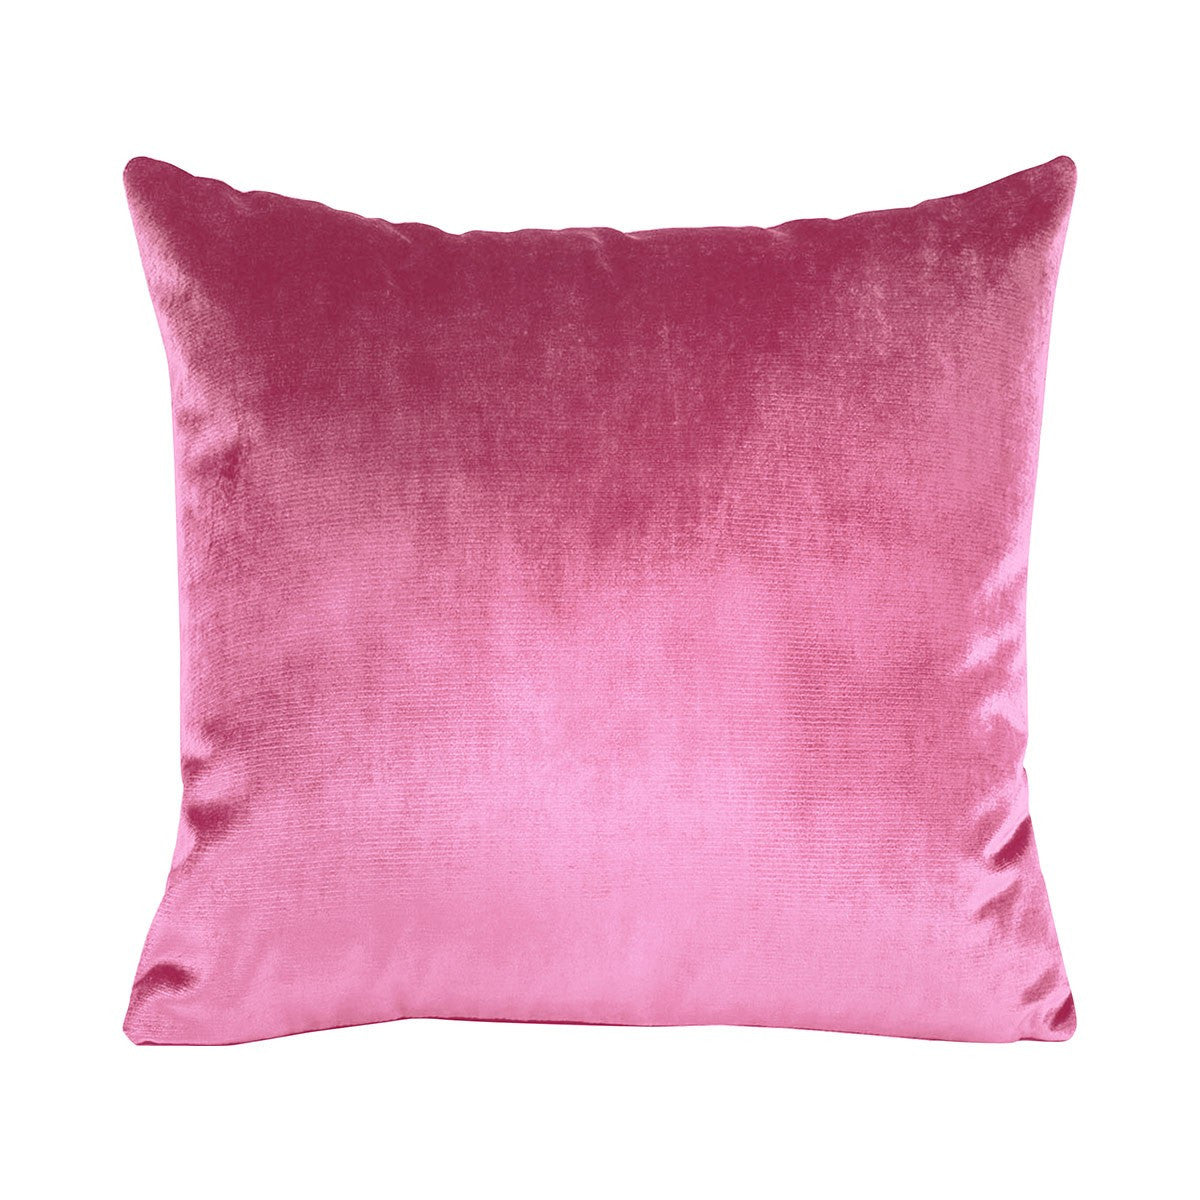 Iosis France Velvet Berlingot Cushion in Rose 45cm